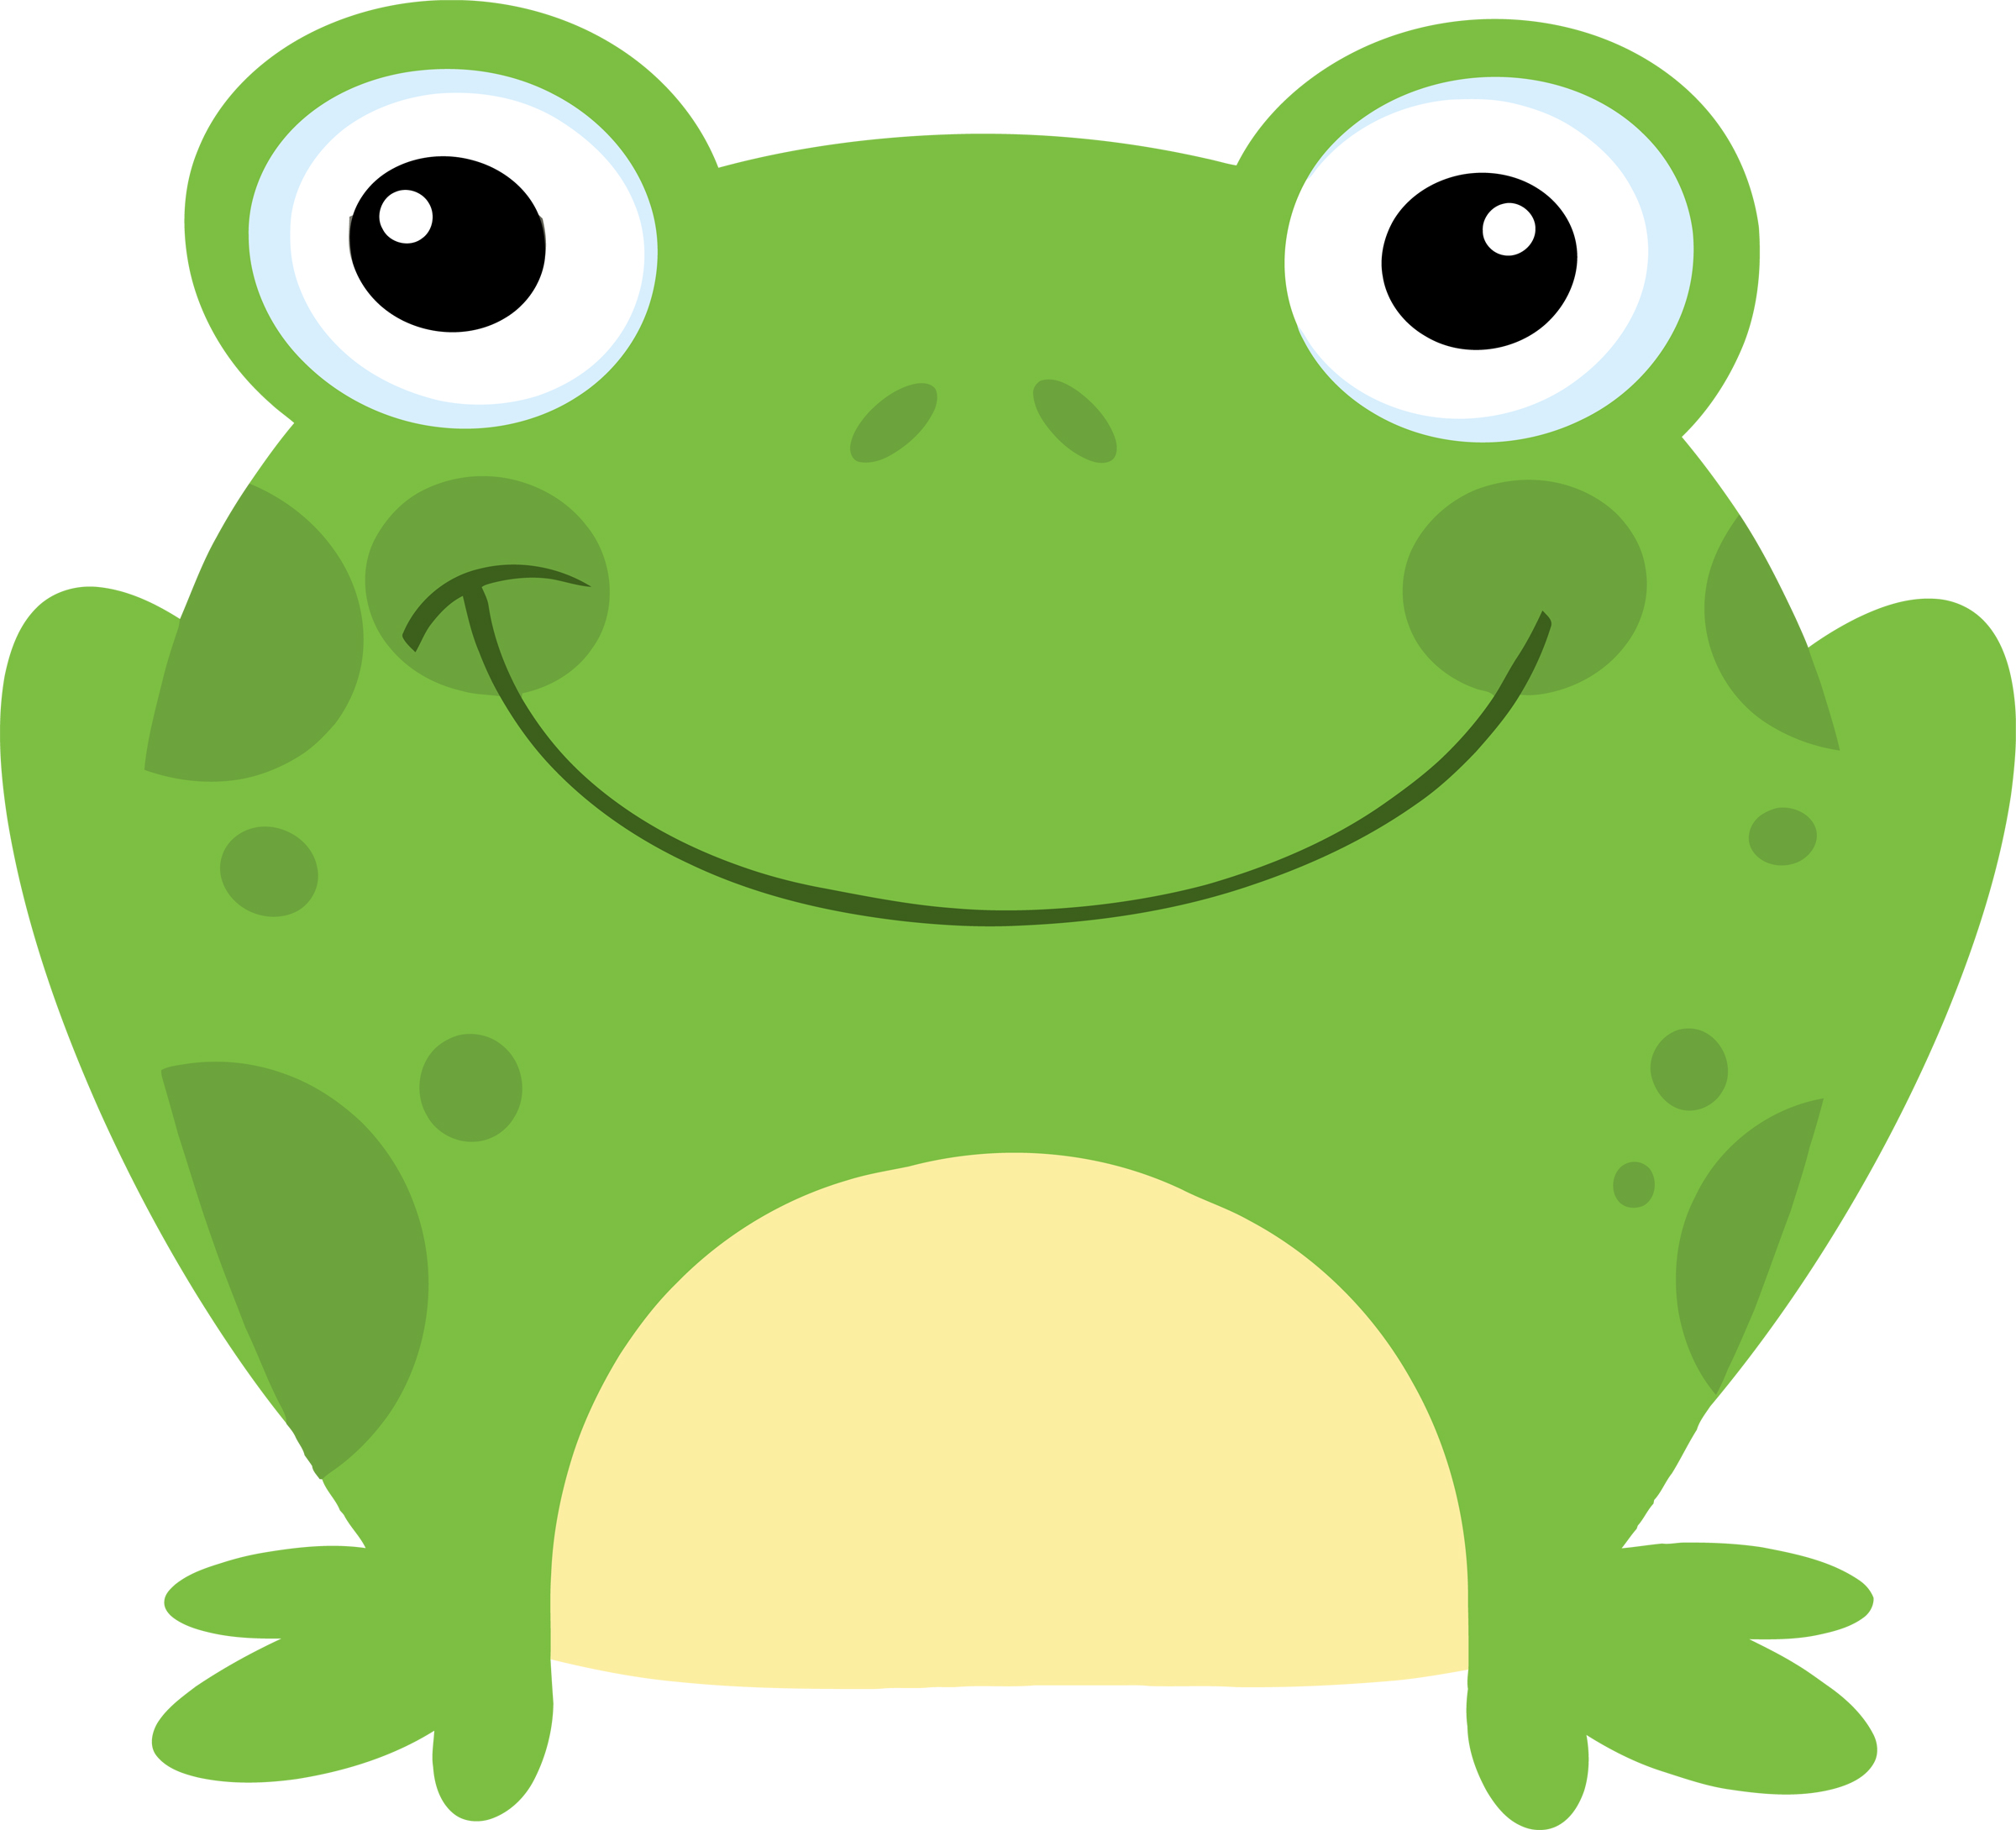 Cartoon Jumping Frog | Free download on ClipArtMag